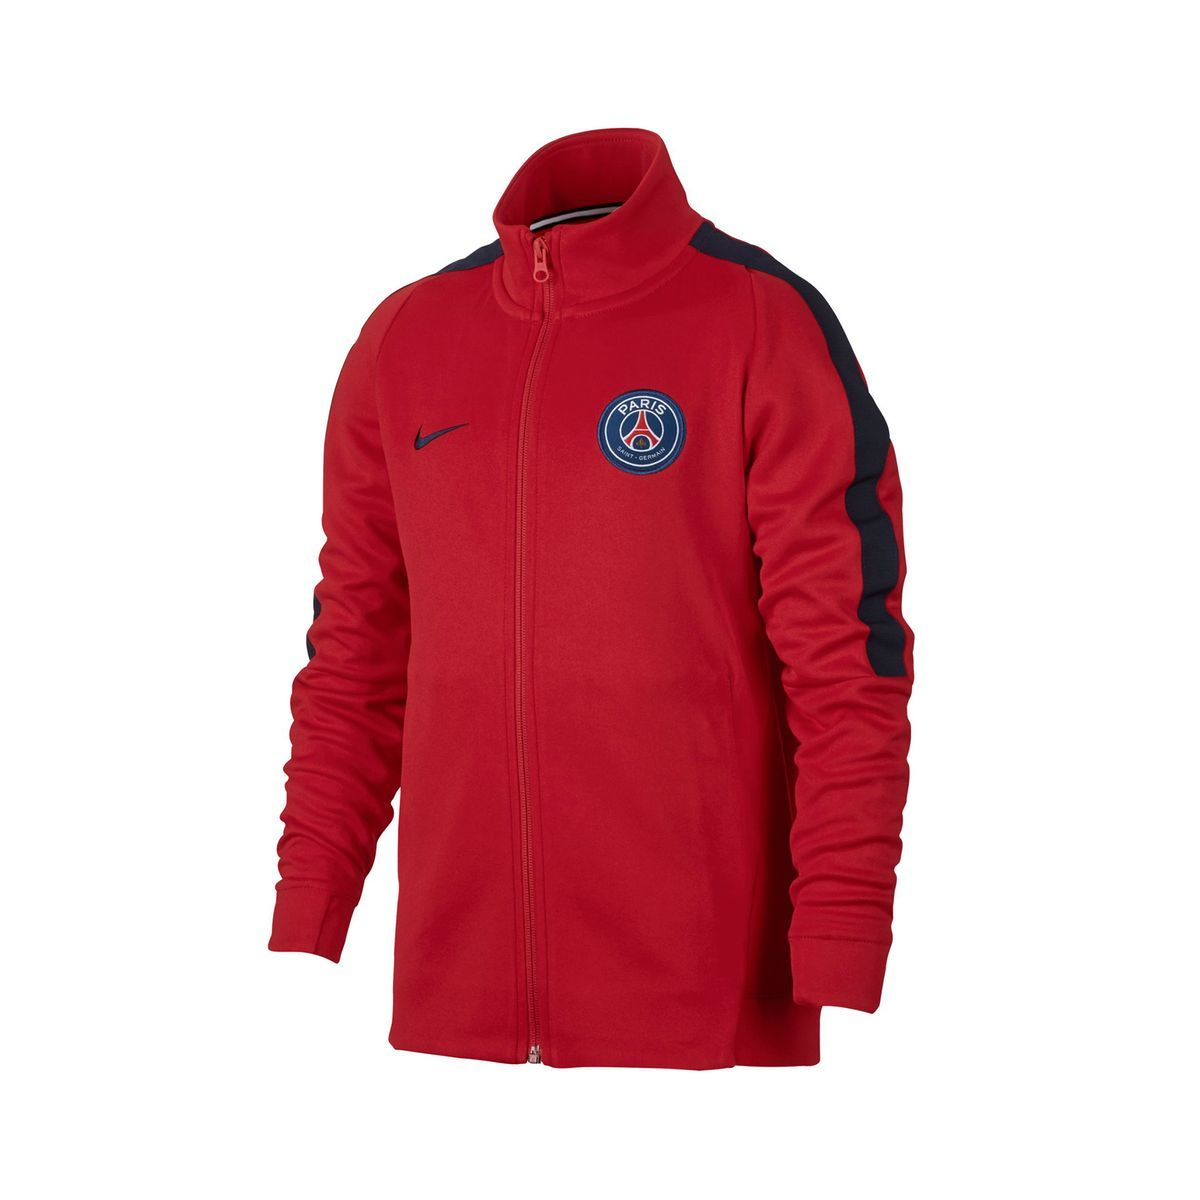 crazy price in stock new arrival Veste N98 Psg Rouge Authentic Junior - Taille : 12 ans in ...